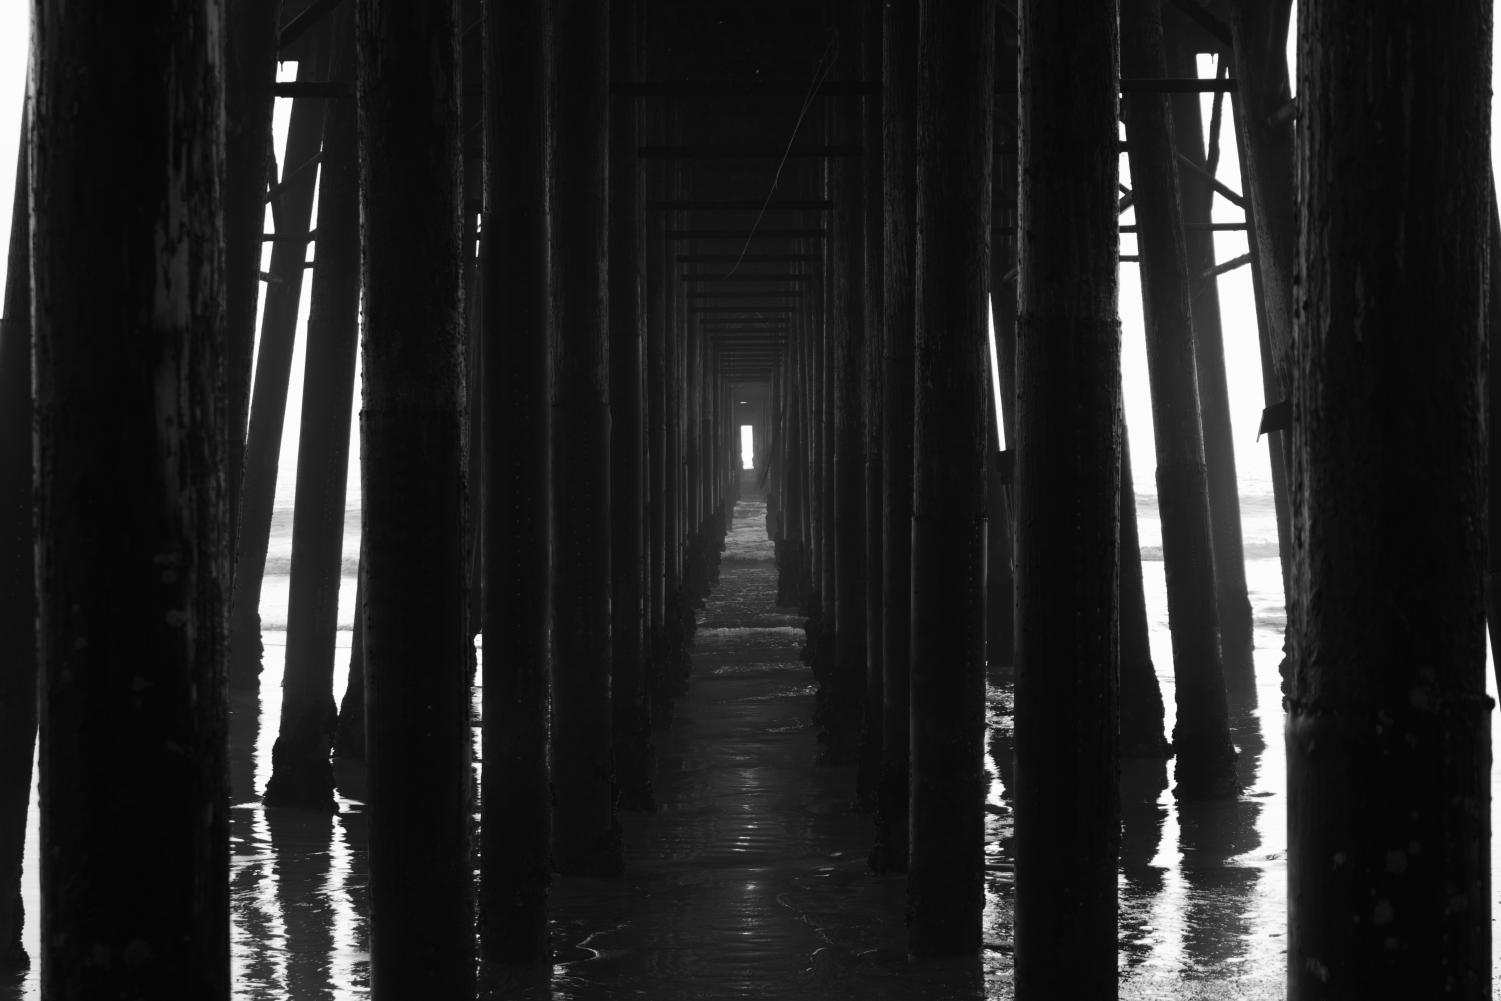 Just below the Oceanside Pier, the wooden columns create a cinematic look that cuts across to the other side of the pier. The Pier was built in 1888 and was only 300 ft long, but after a few reconstructions, the total length has been multiplied into 1,954 feet.